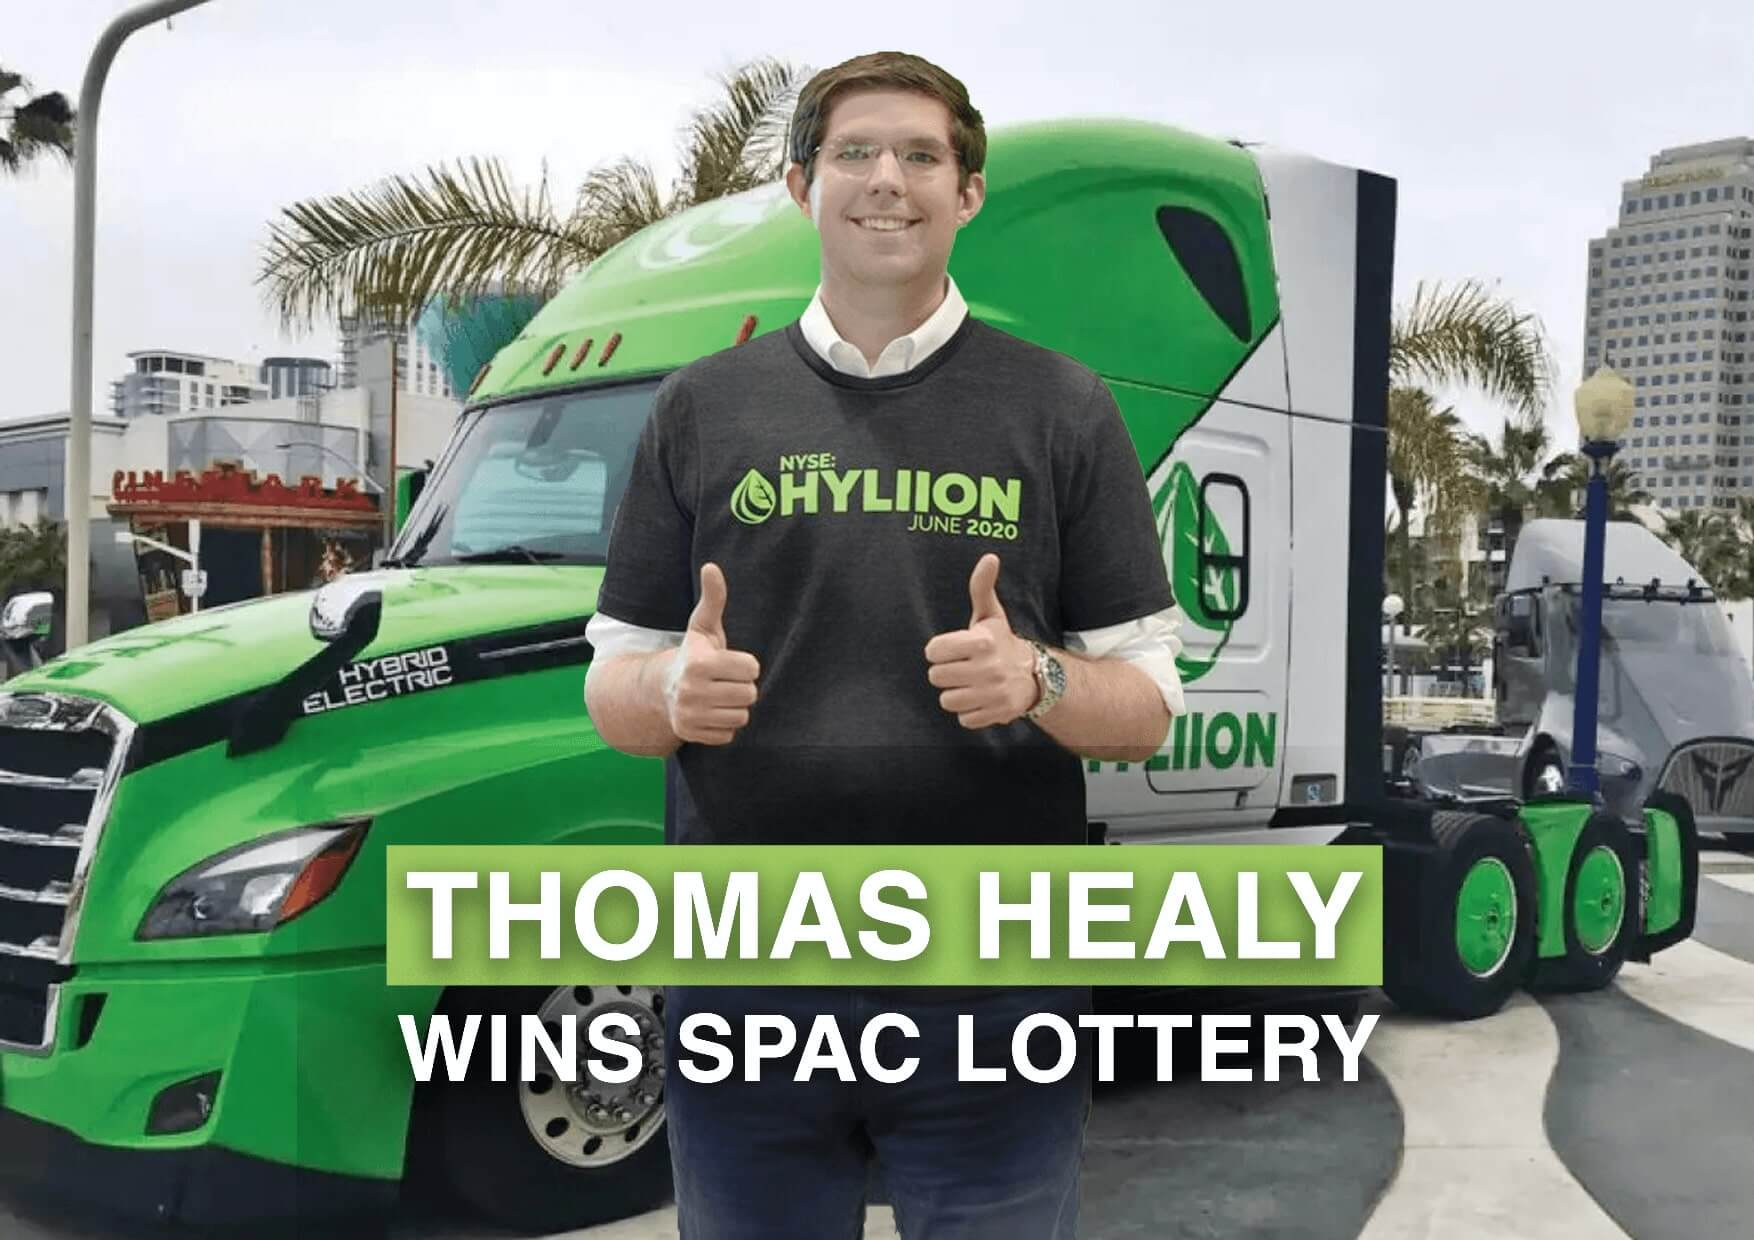 Thomas Healy, A 28 Years Old CEO, Wins The SPAC Lottery